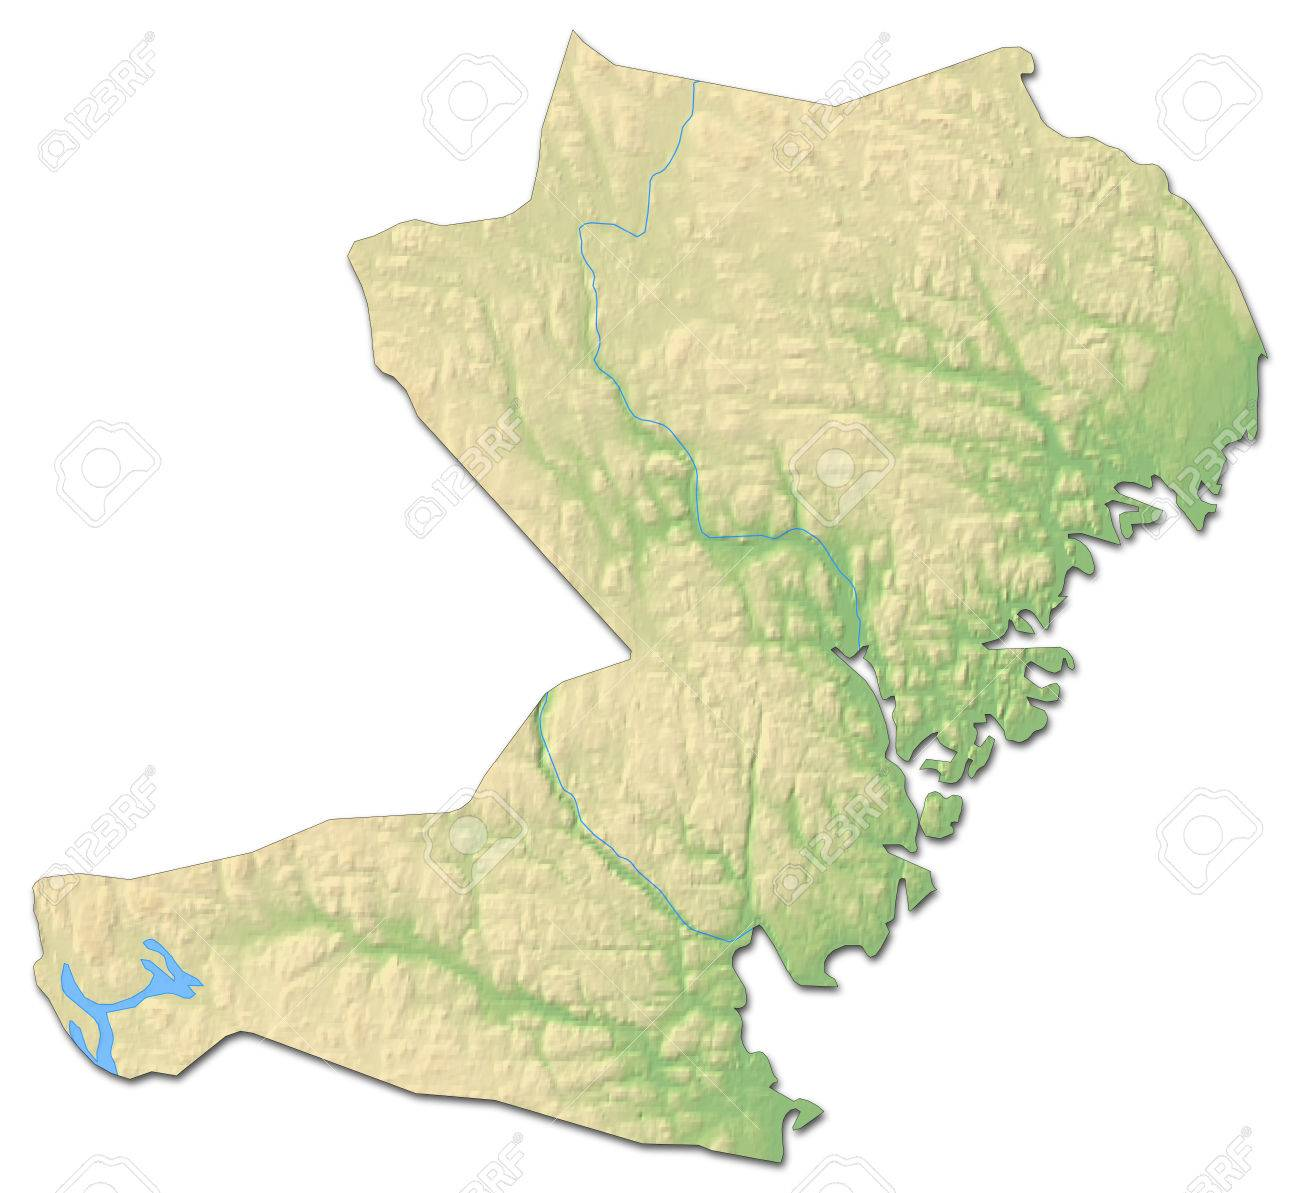 Relief Map Of Vsternorrland County A Province Of Sweden With - Sweden relief map